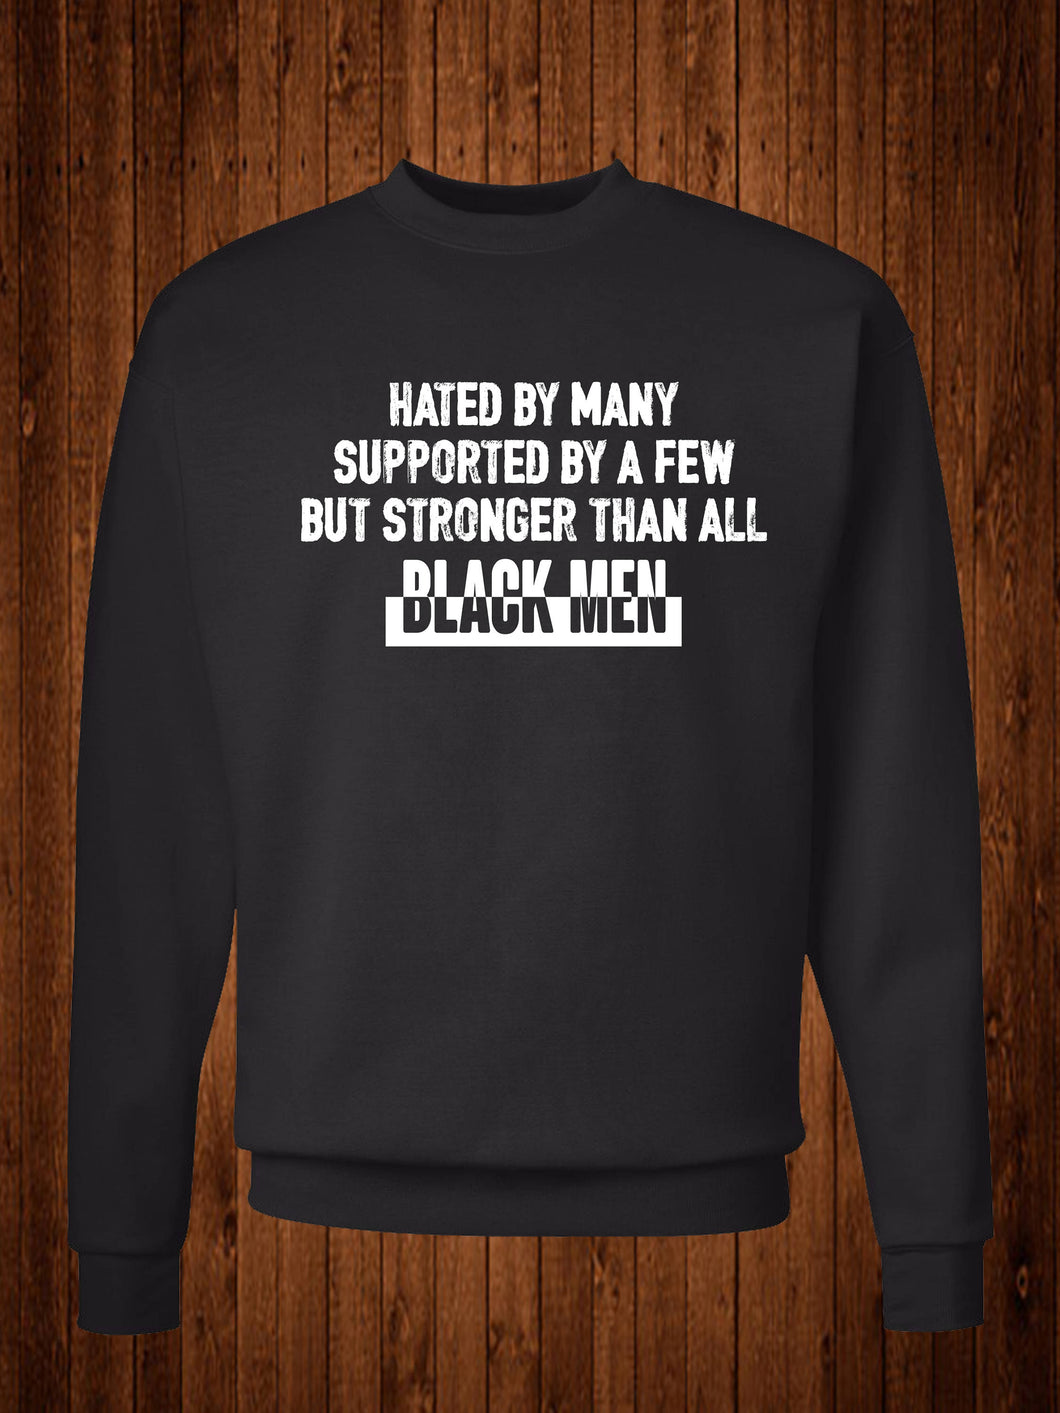 Hated by Many(For Men) Sweatshirt, Black Lives Matter Sweatshirt, Black Pride Sweatshirt, Crew Sweatshirt